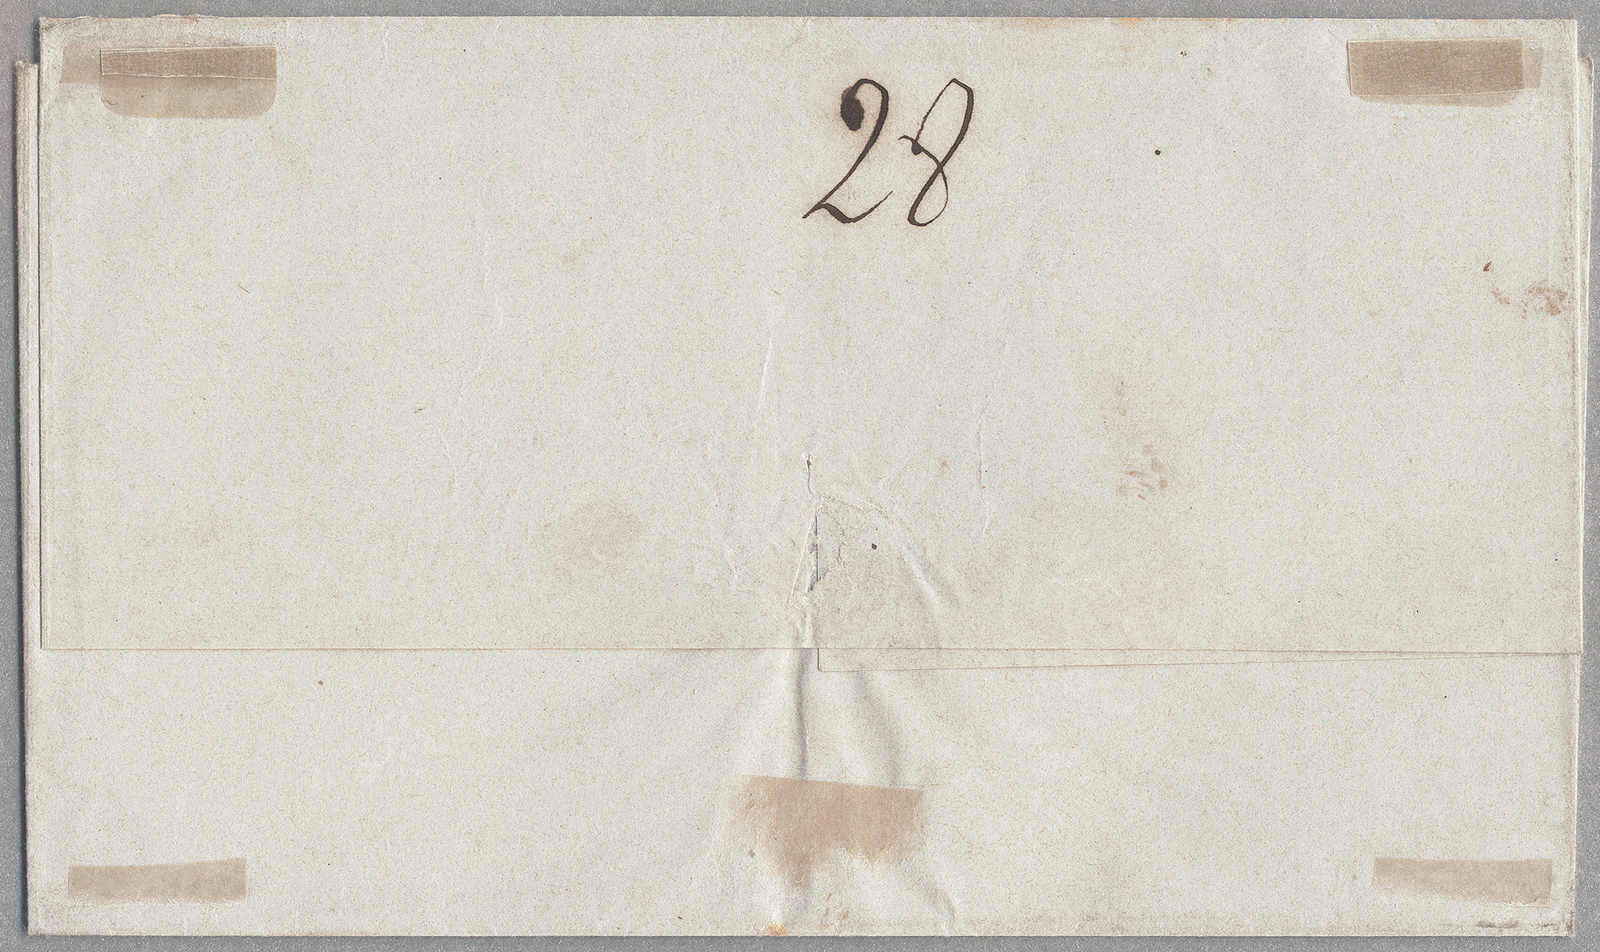 Lot 15150 - America, South/Middle/Caribbean Argentina -  classicphil GmbH 8'th classicphil Auction - Day 2